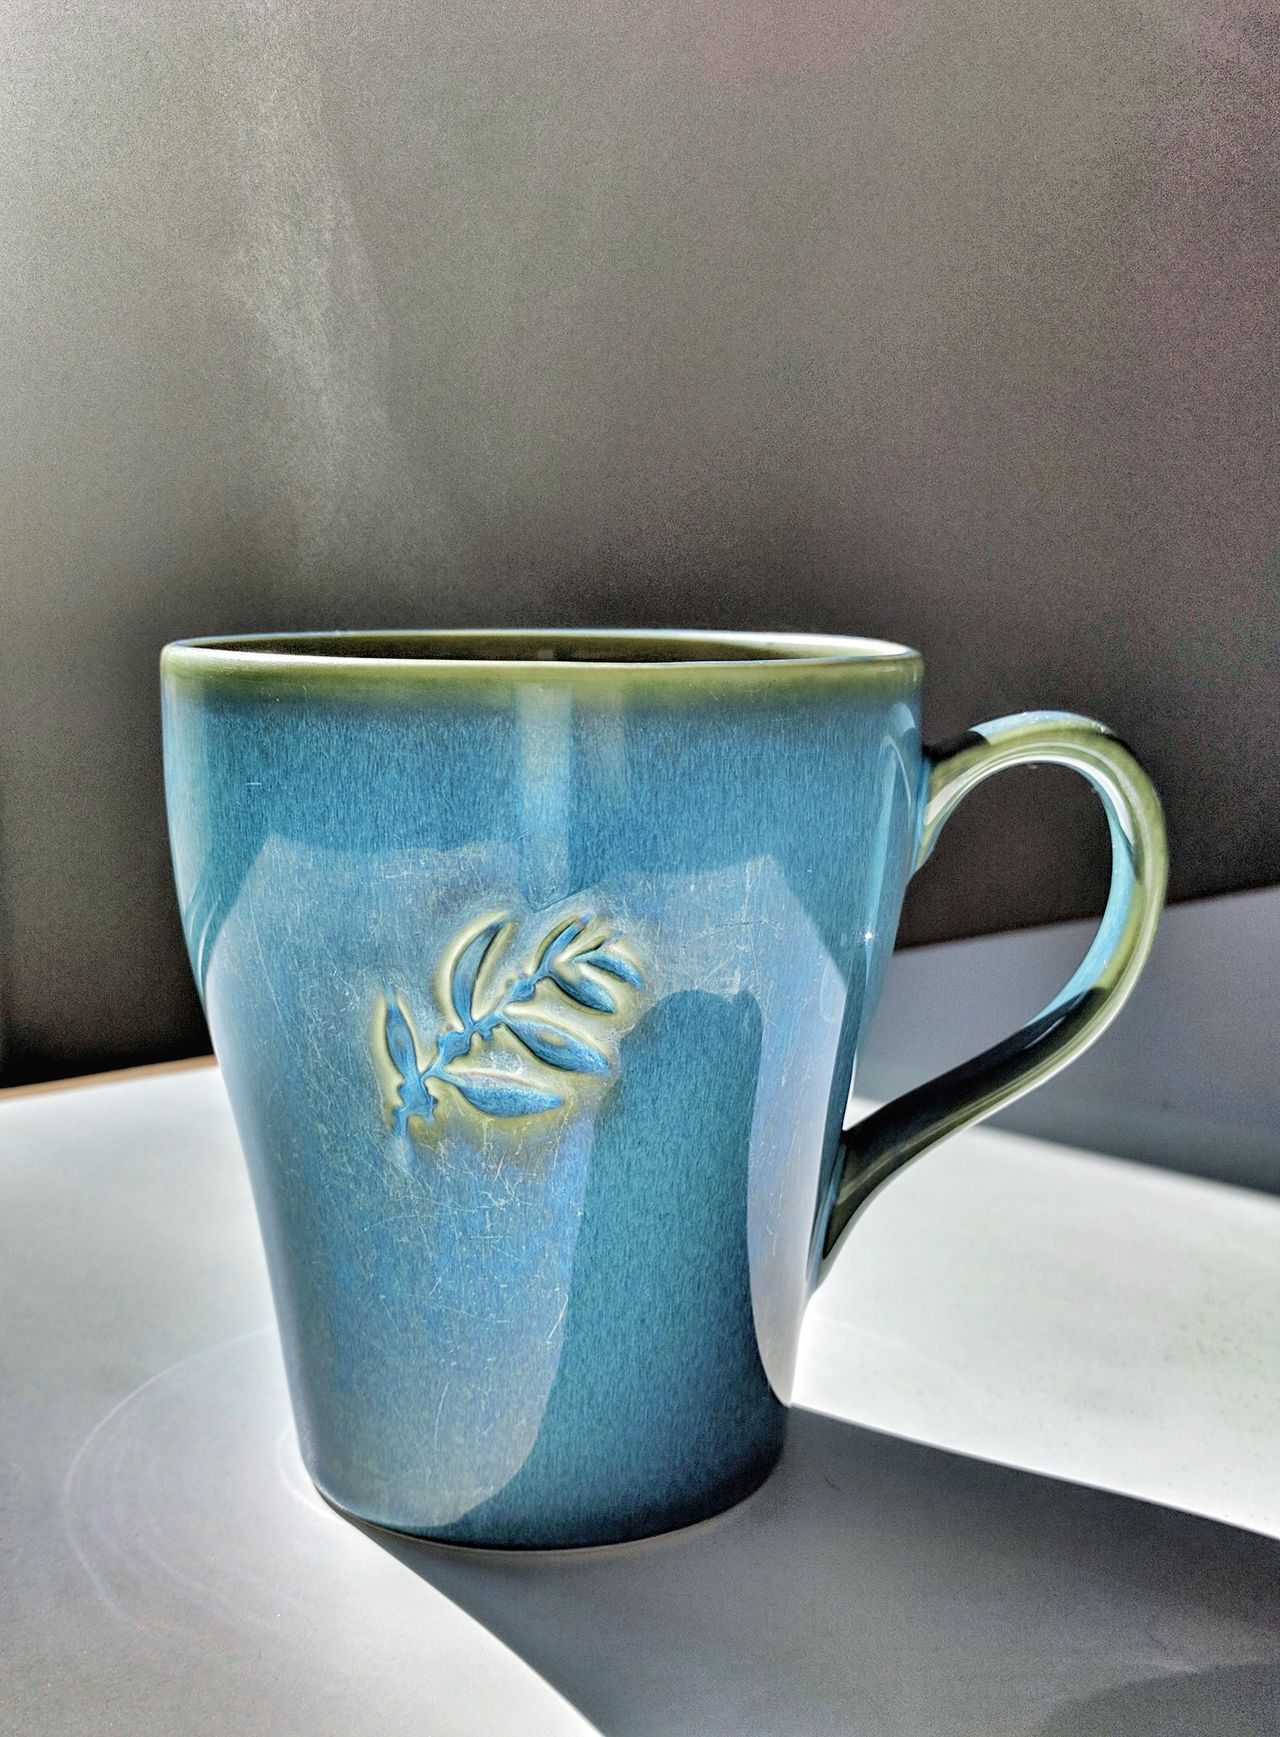 Indoors  Close-up Refreshment Table Drink No People Day Coffee Cup Coffee Morning Coffee Sunlight And Shadow Shapes And Angles Morning Light Blue Steam Mug Design EyeEmNewHere Warmth Warm Drink Circles Pattern Sunlight Shades Of Blue Shadows Caffine Art Is Everywhere Break The Mold